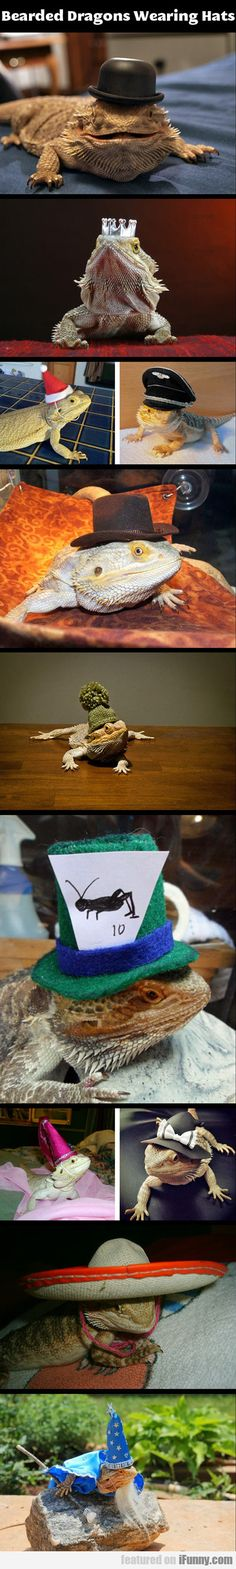 Bearded Dragons Wearing Hats - http://pinnit.appmyxer.com/pinnit-pics/bearded-dragons-wearing-hats/ -  Visit http://pinnit.appmyxer.com to read more on this topic